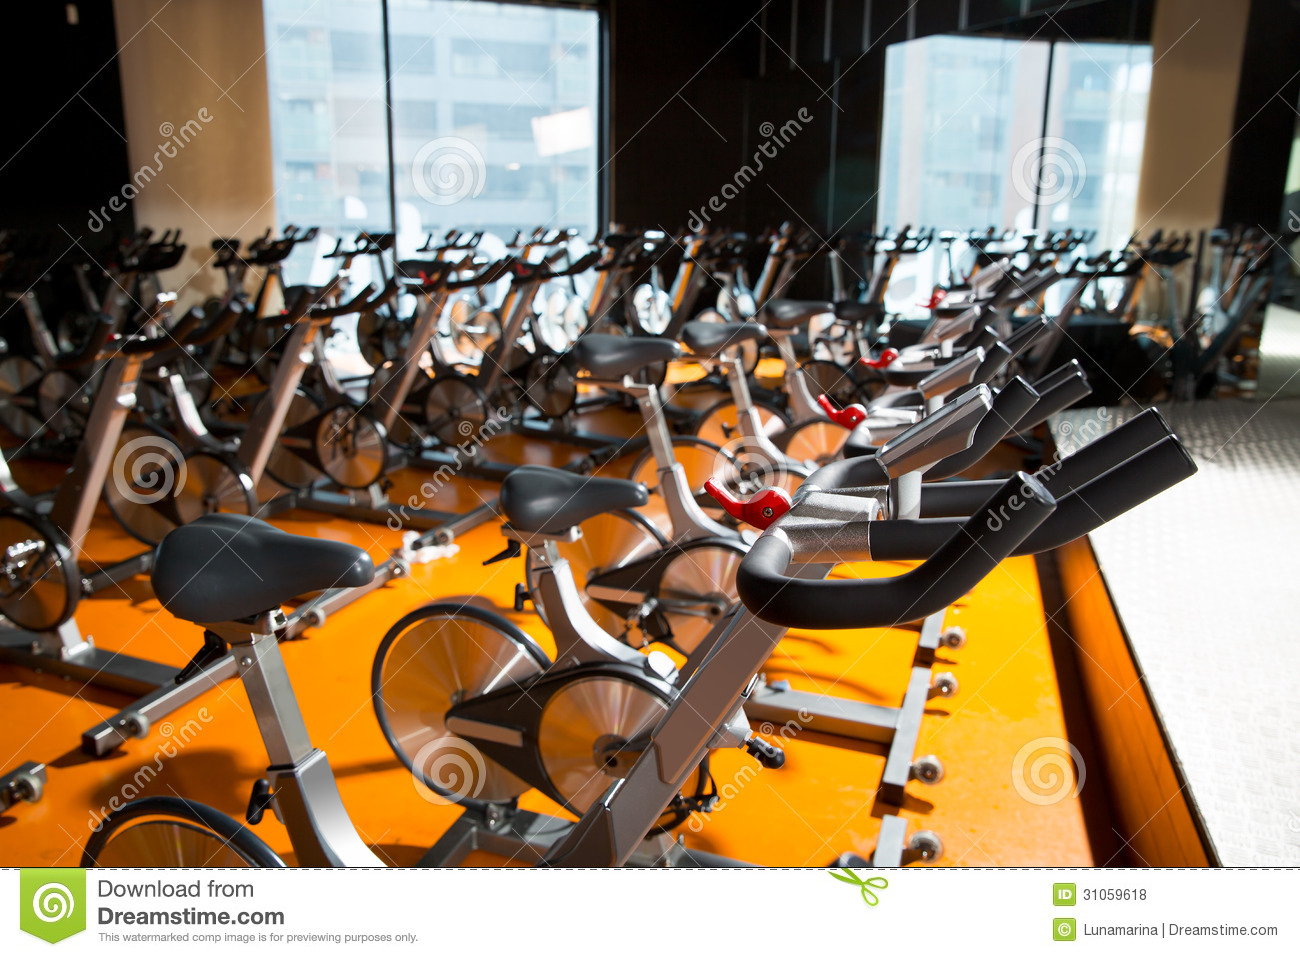 Aerobics spinning exercise bikes gym room in a row royalty